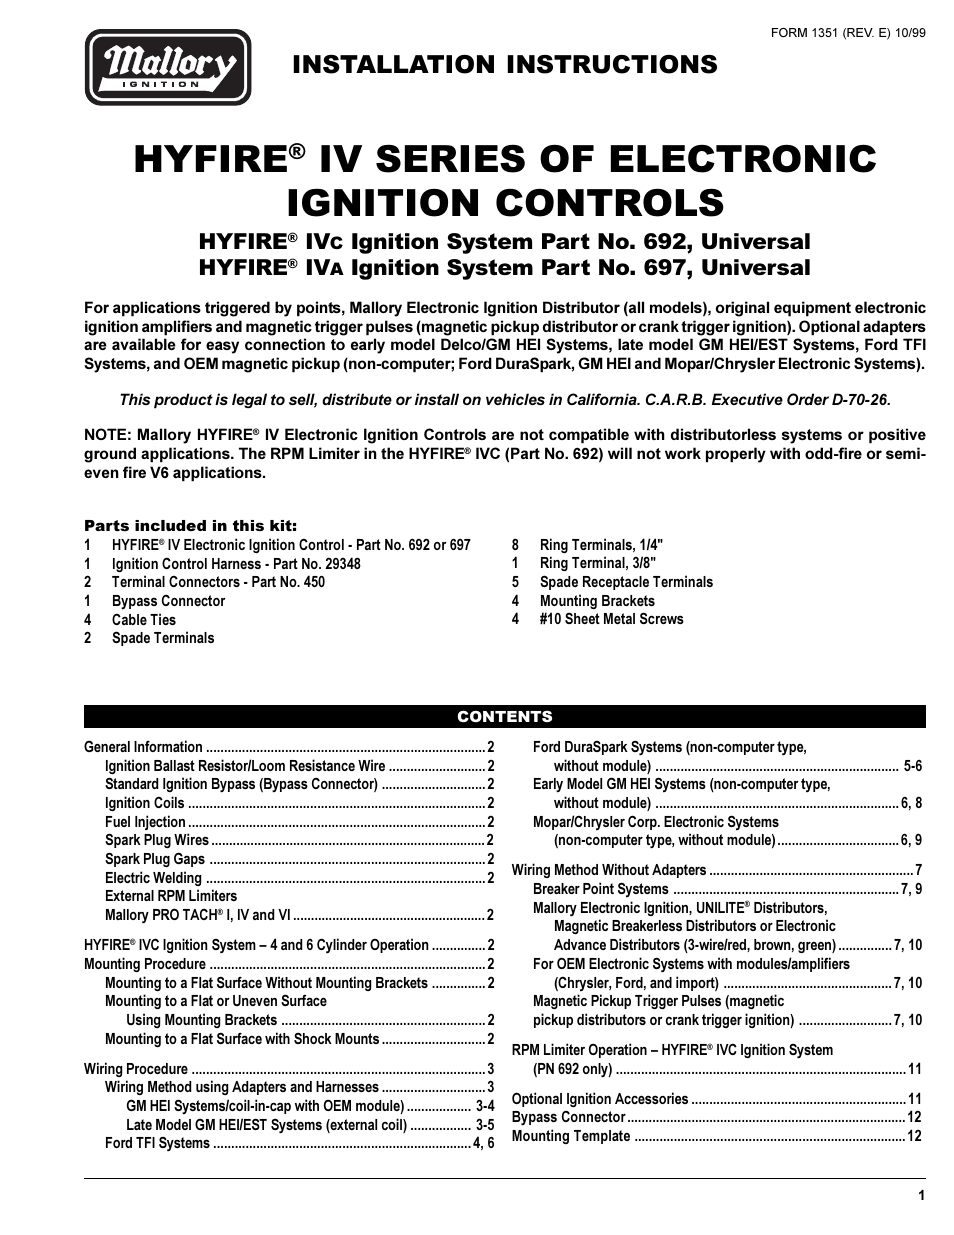 Mallory Hyfire Ignition Wiring Diagram | Online Wiring Diagram on duraspark wiring diagram 1, duraspark ii ballast resistor in, distributor wiring diagram, duraspark ii diagram, ford ignition diagram, 84 bronco ignition switch diagram, duraspark wiring 1980, duraspark diagram 2 3, 1985 bronco ii ignition diagram,